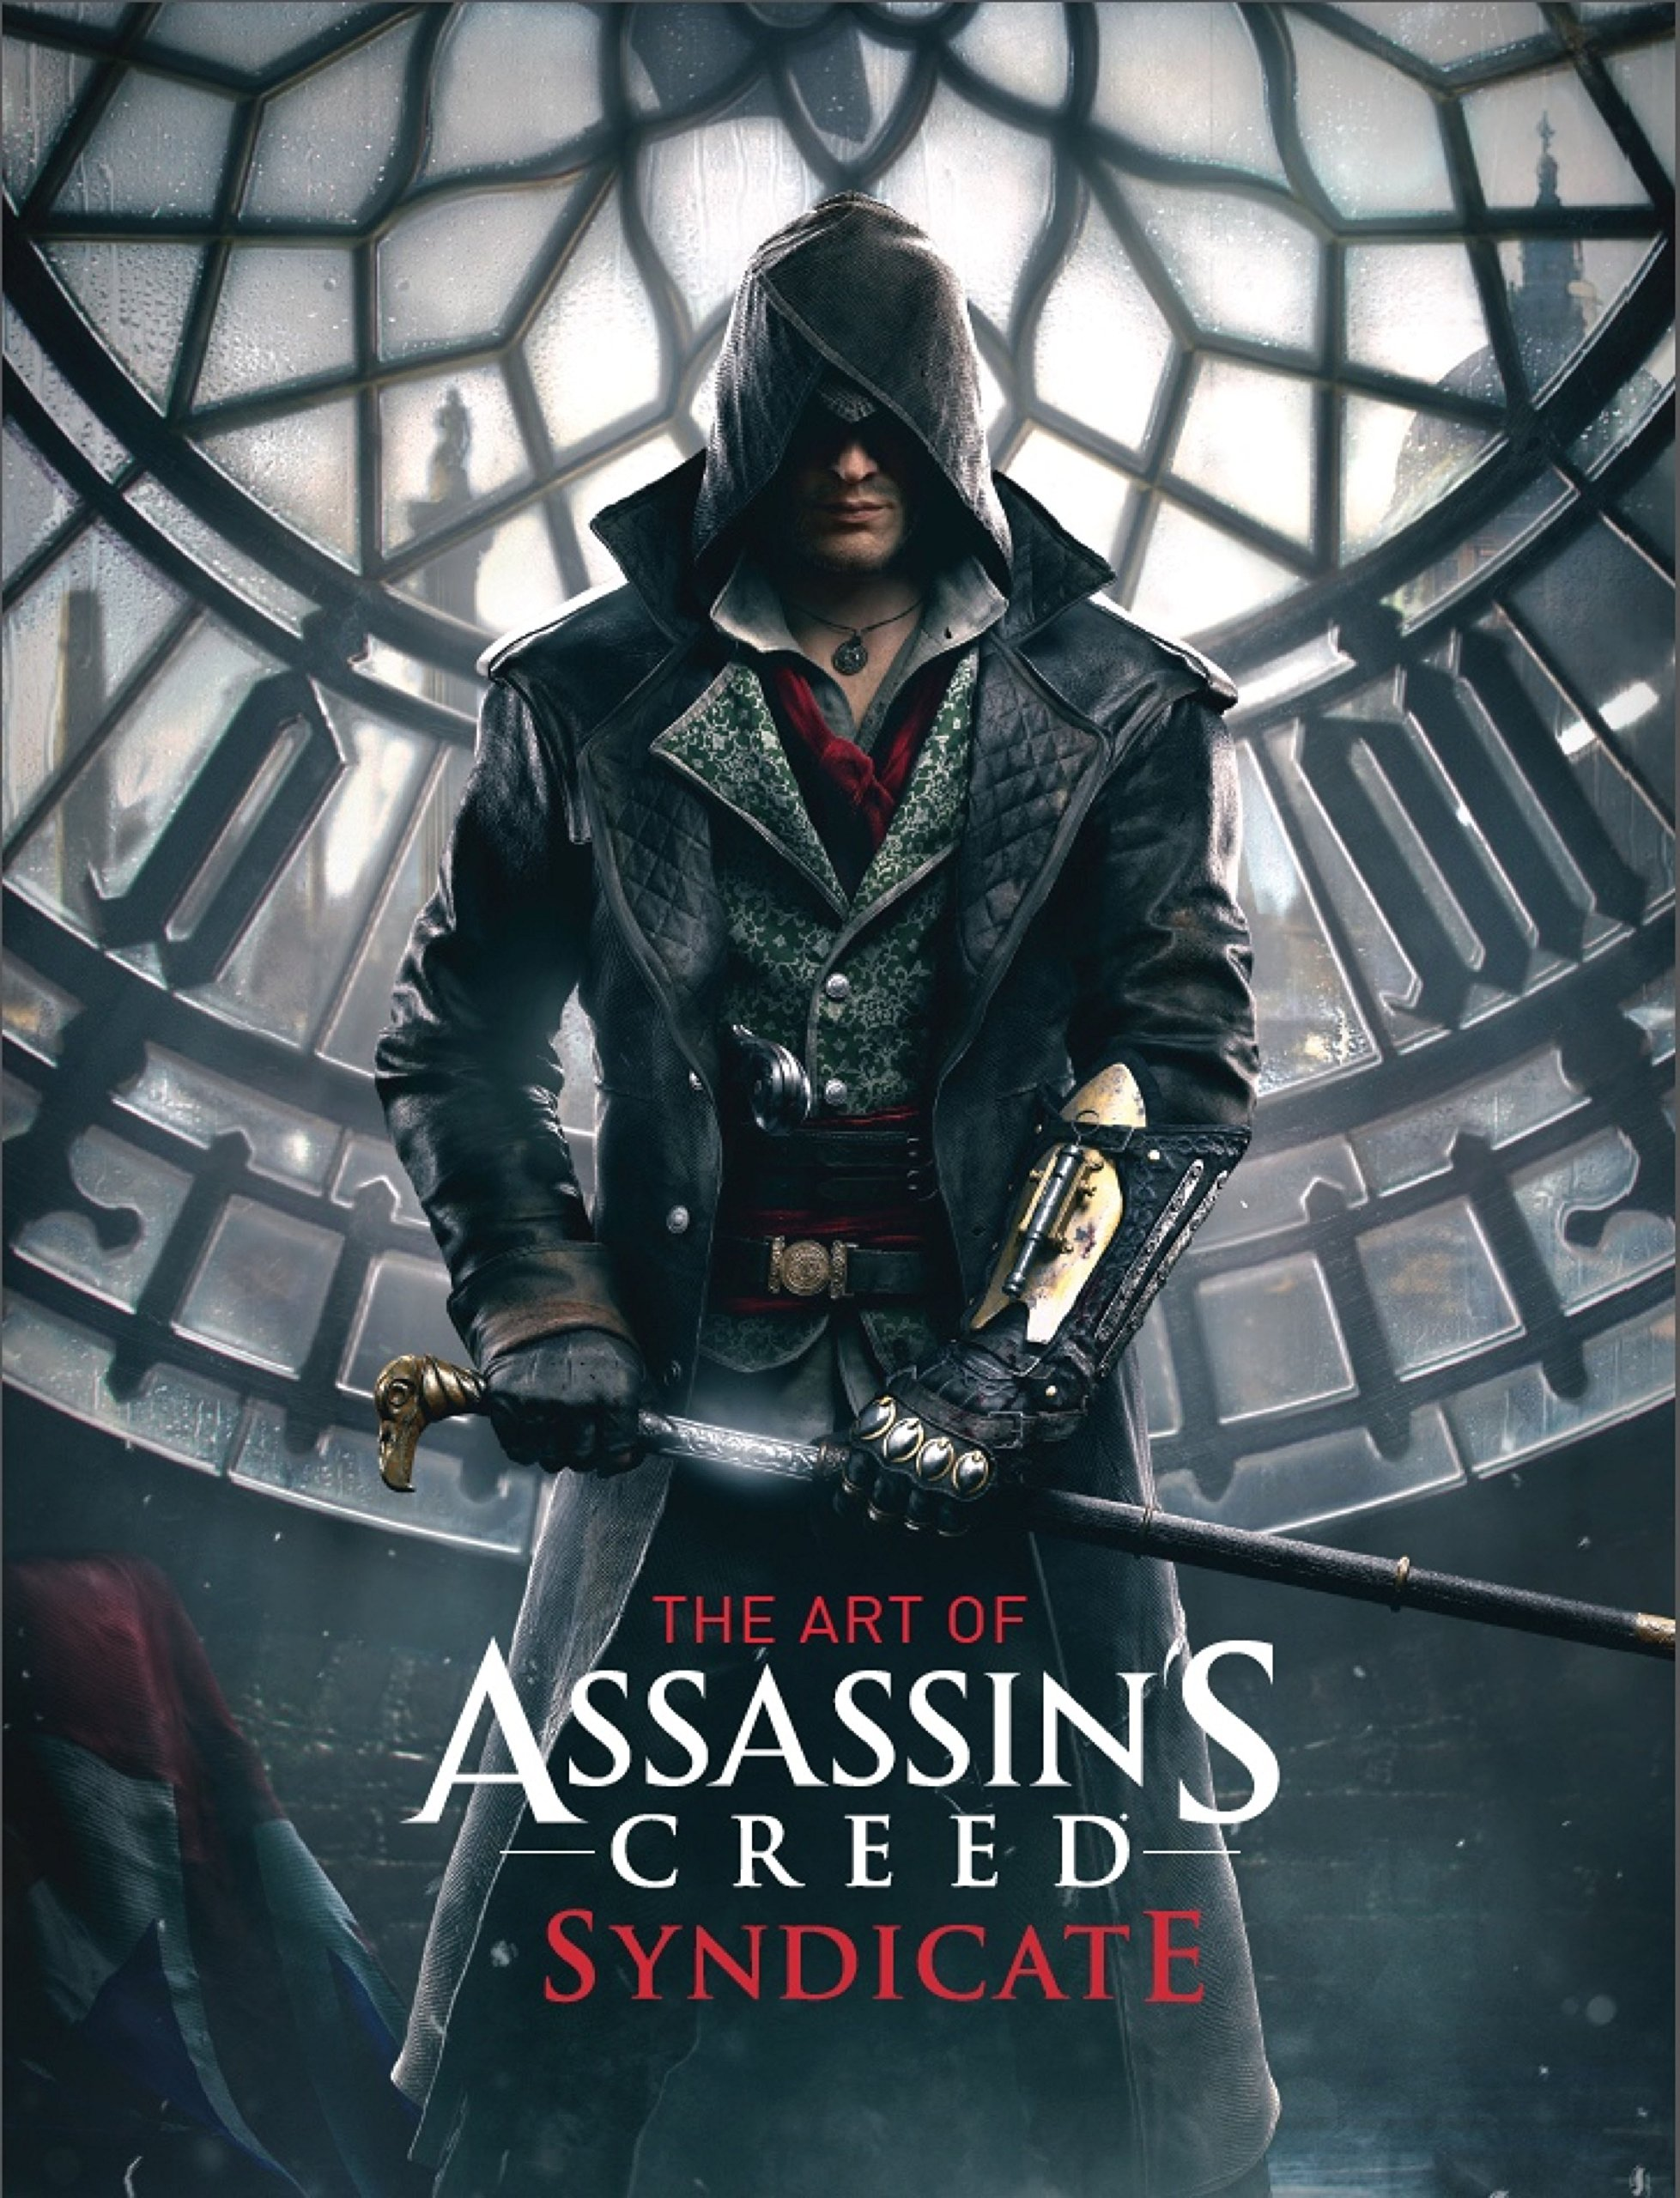 Assassin's Creed Syndicate CD Key+Crack PC Game For Free Download